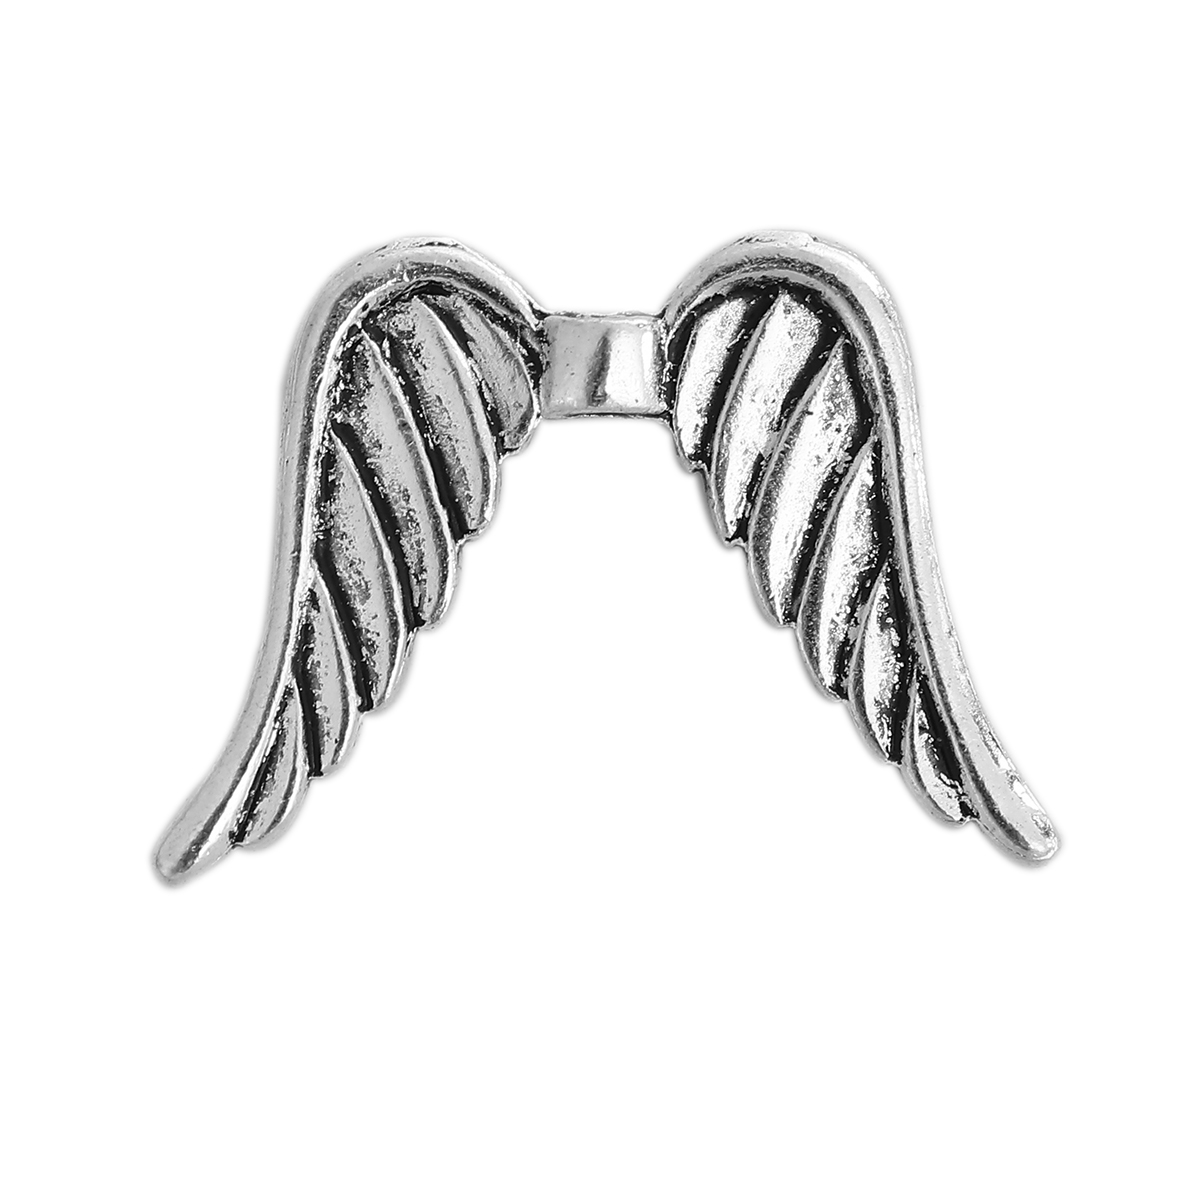 Zinc <font><b>Based</b></font> Alloy Spacer Beads Wing Antique Silver <font><b>32mm</b></font>(1 2/8